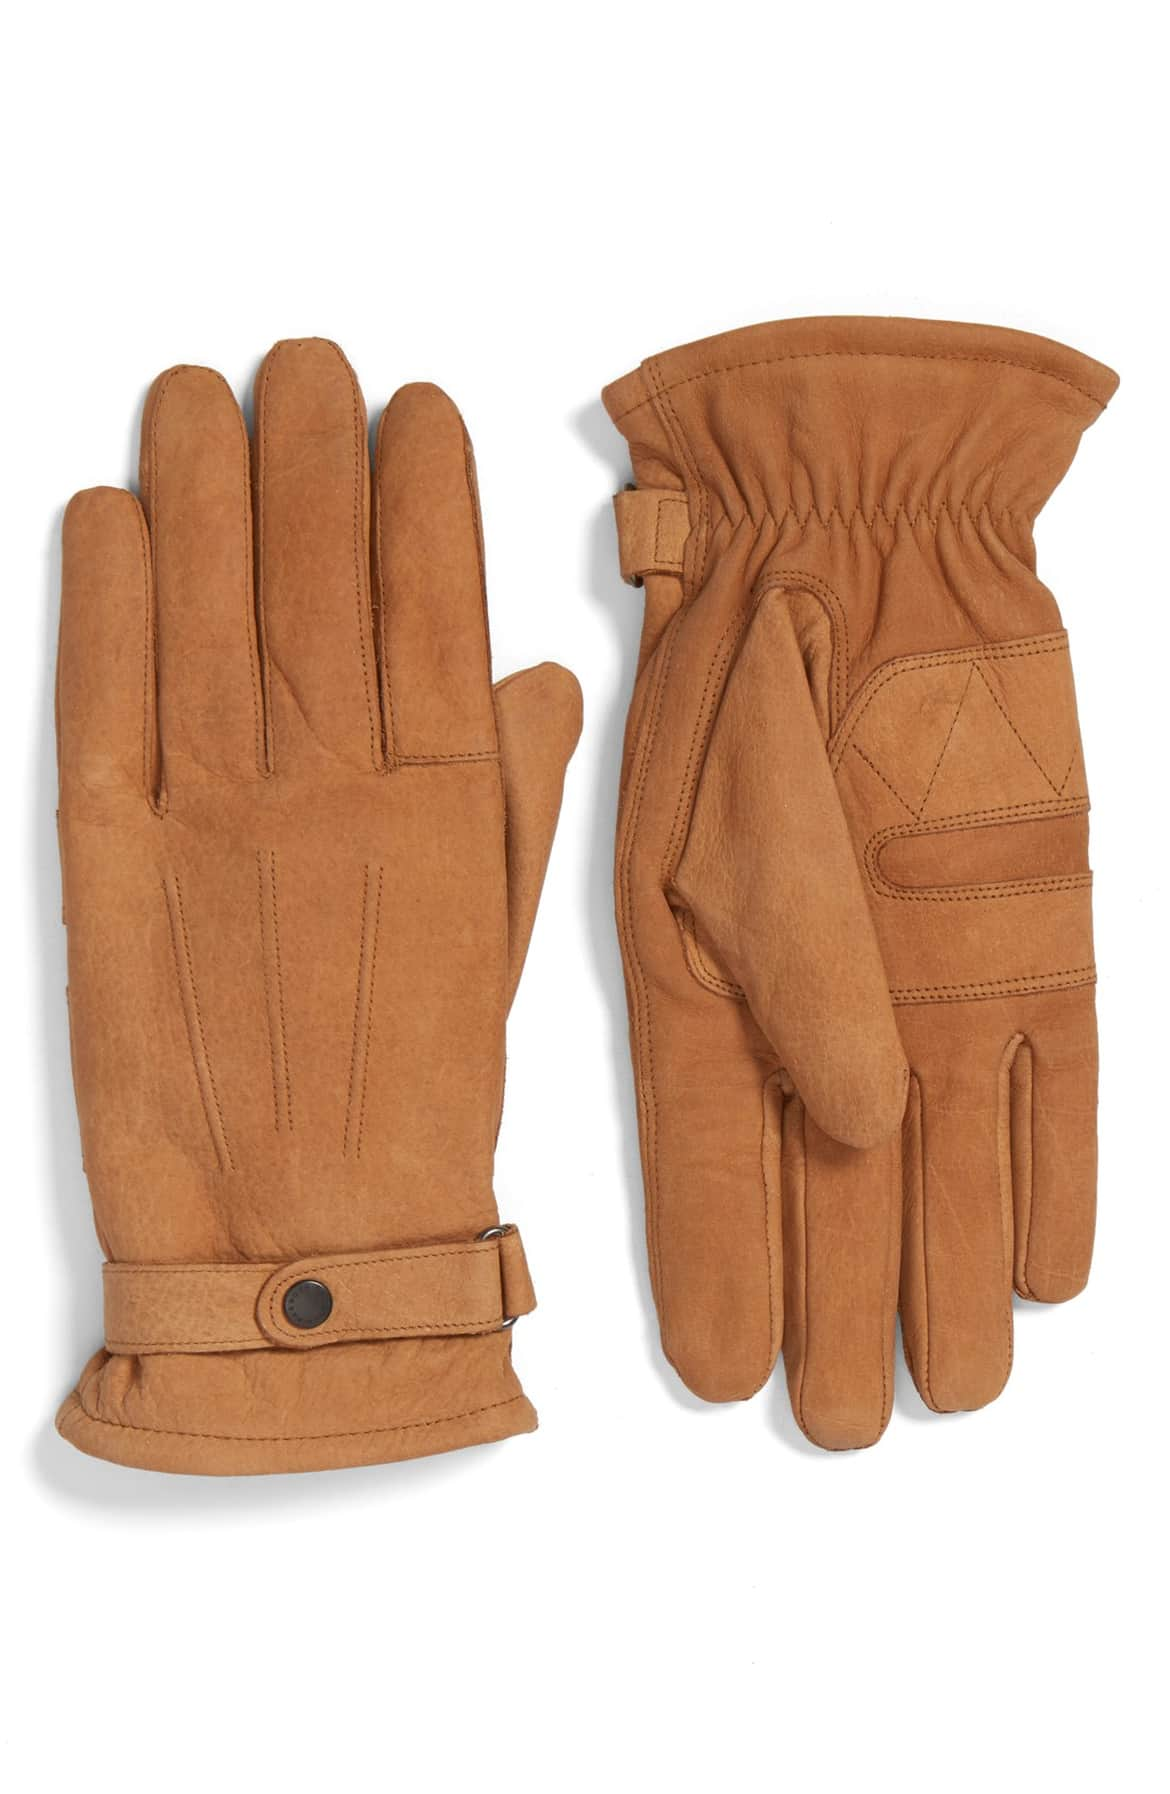 barbourleathergloves.jpeg